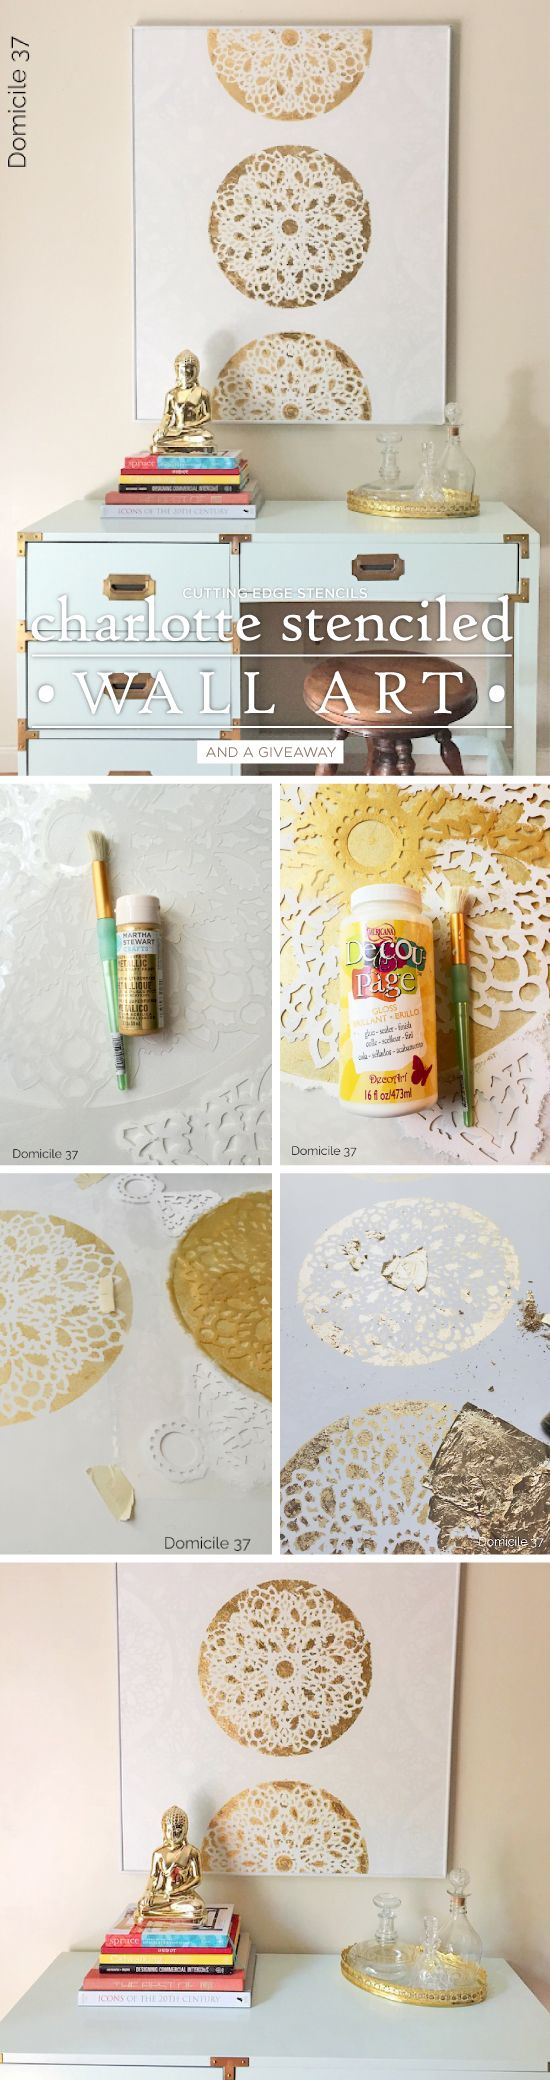 how to stencil diy gold stenciled piece of wall art using a lace inspired stencil